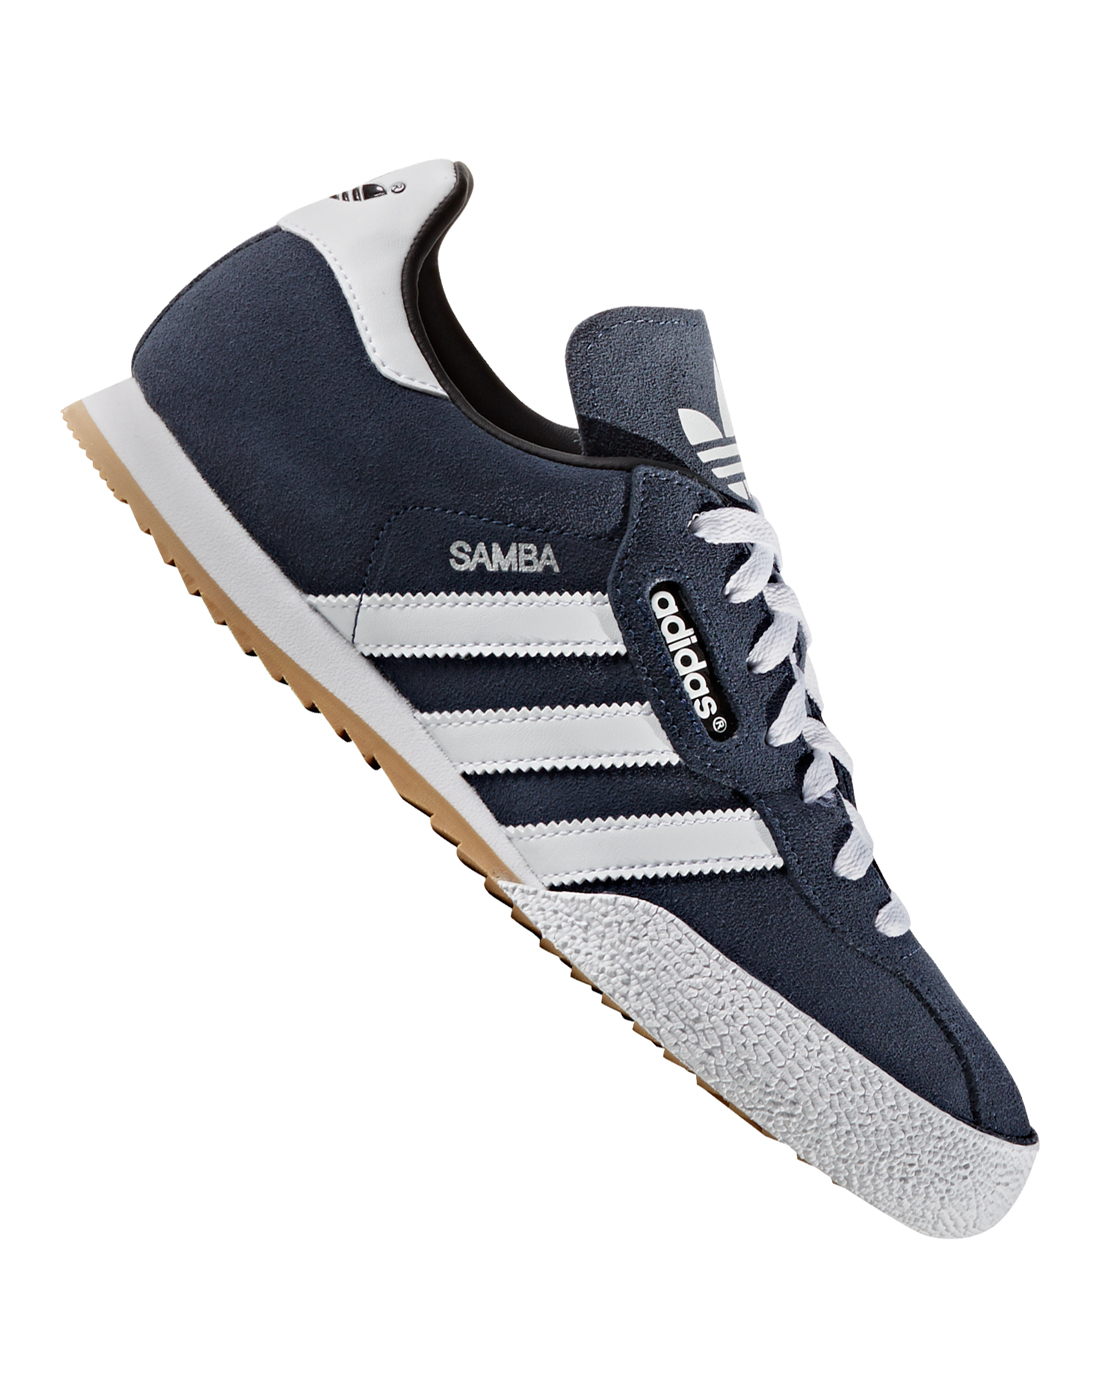 ca483485f025b4 adidas Originals Mens Samba Super Suede